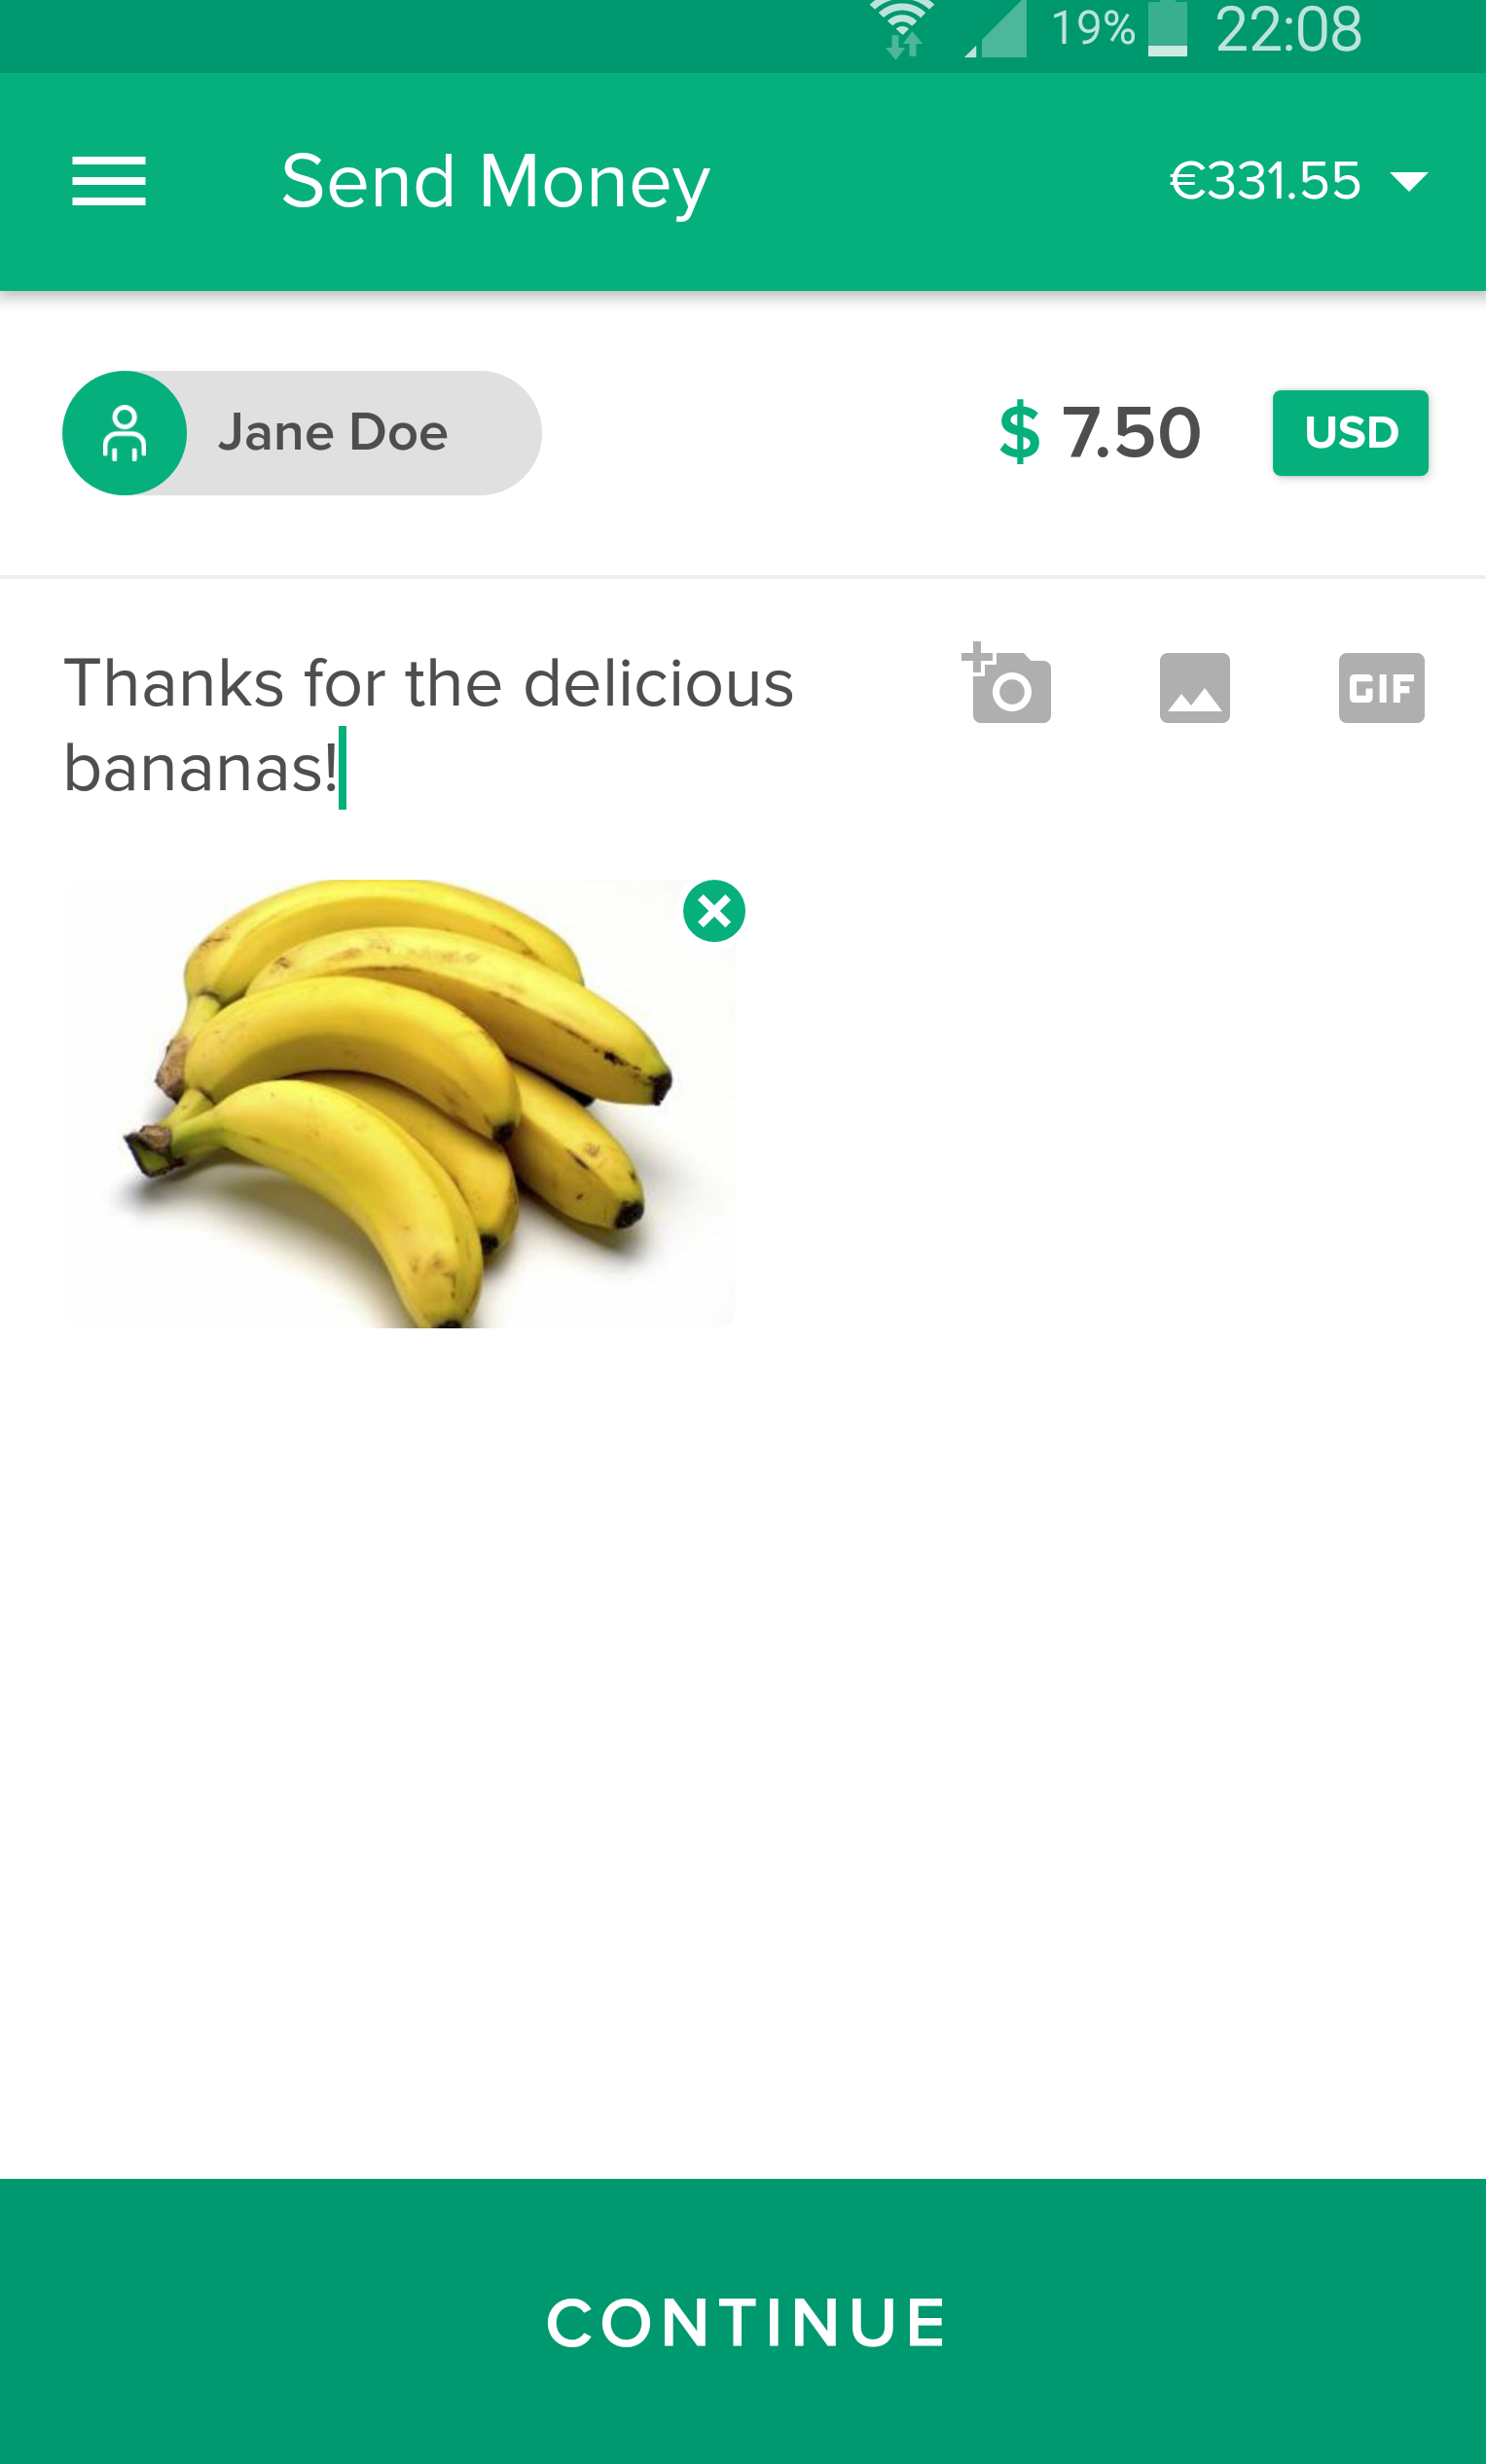 Send_Bananas.png